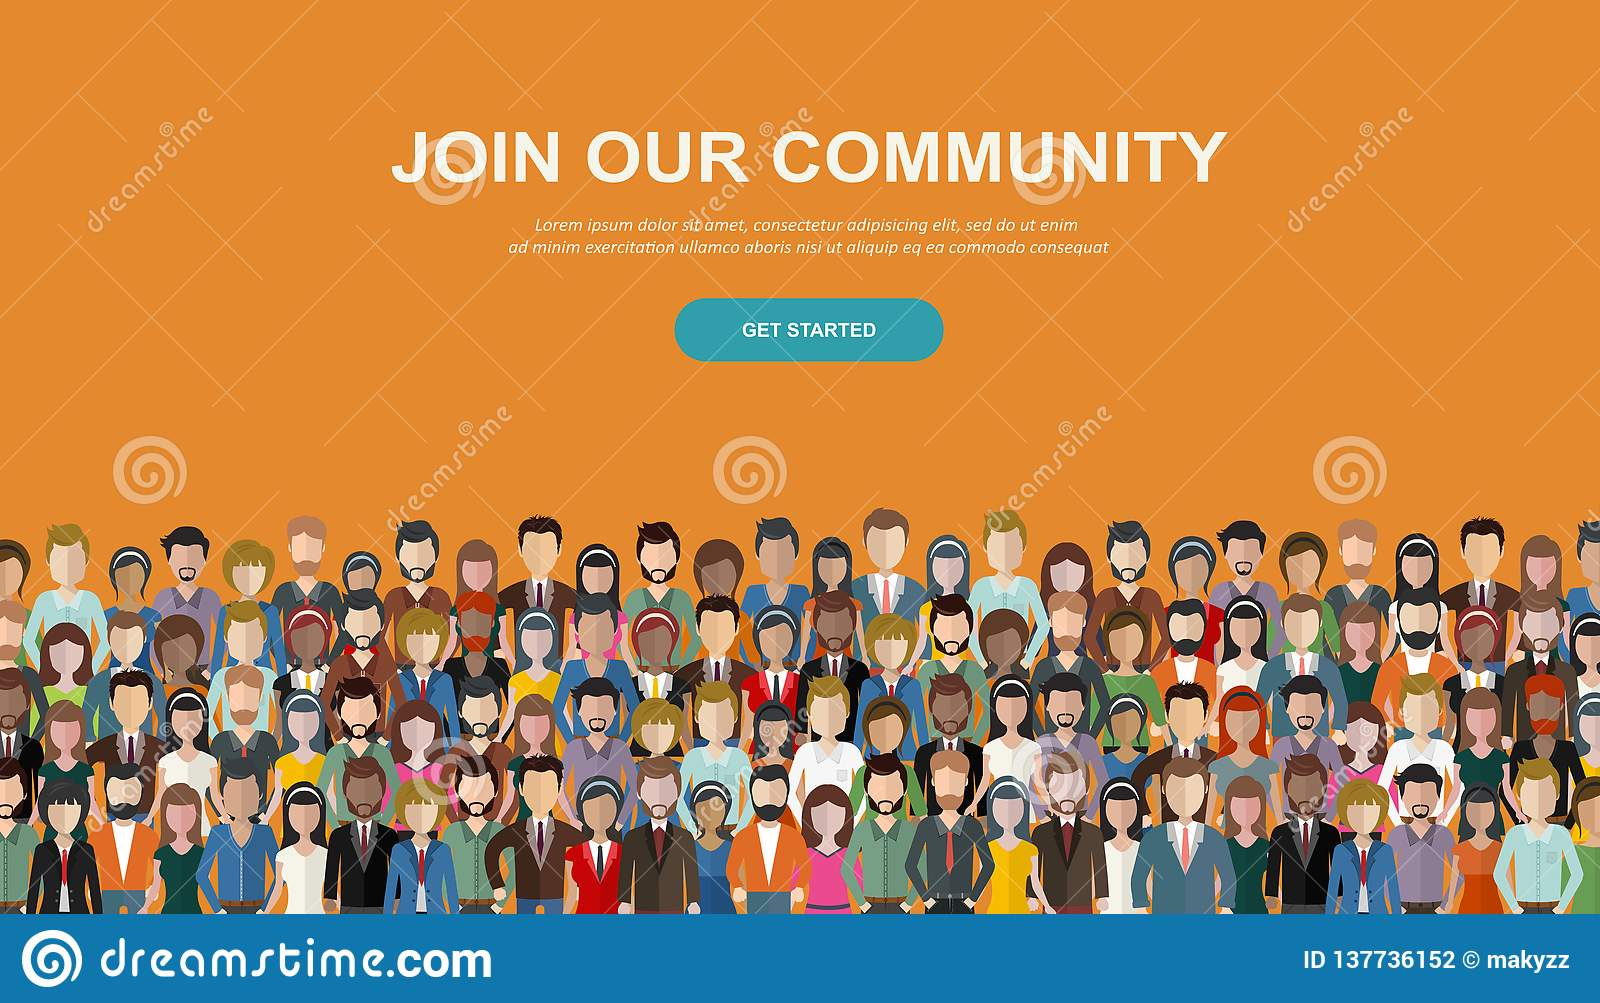 Join our community. Crowd of united people as a business or creative community standing together. Flat concept vector